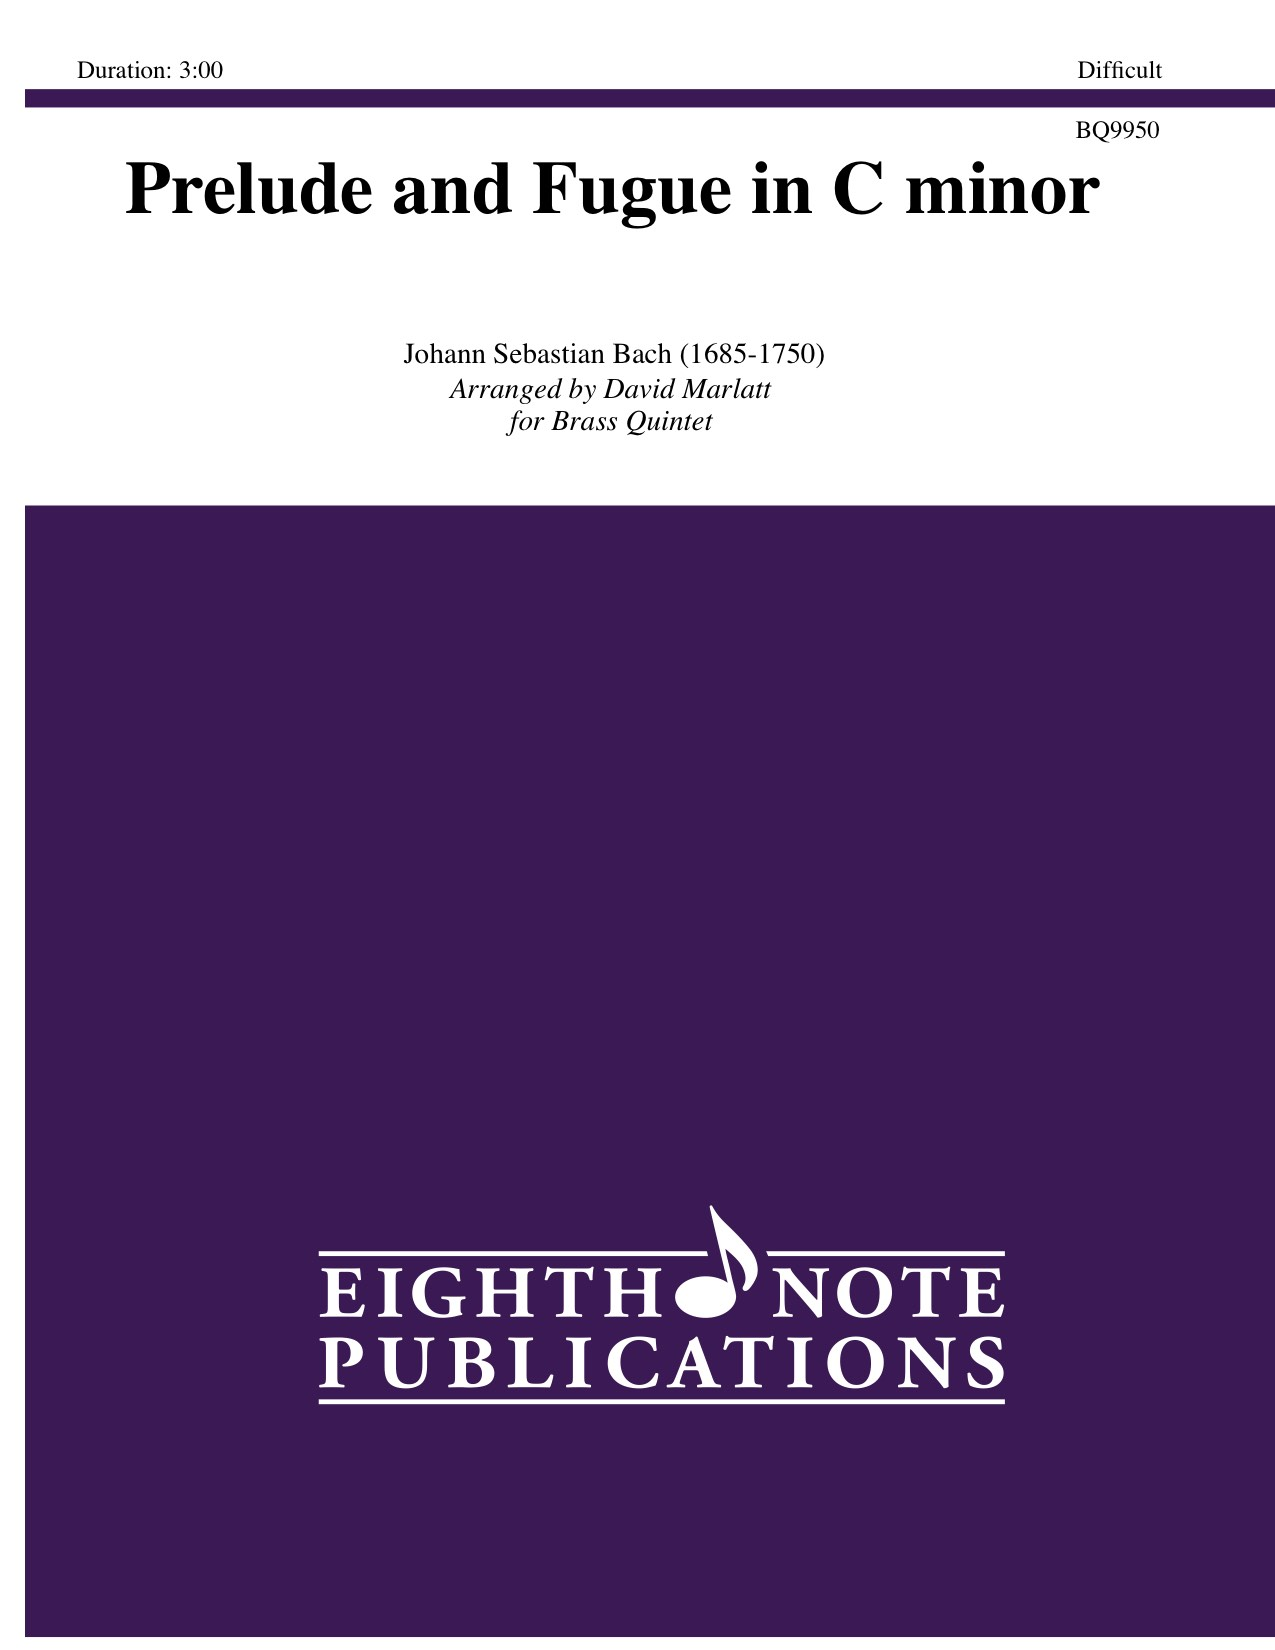 eighth note publications   prelude and fugue in c minor